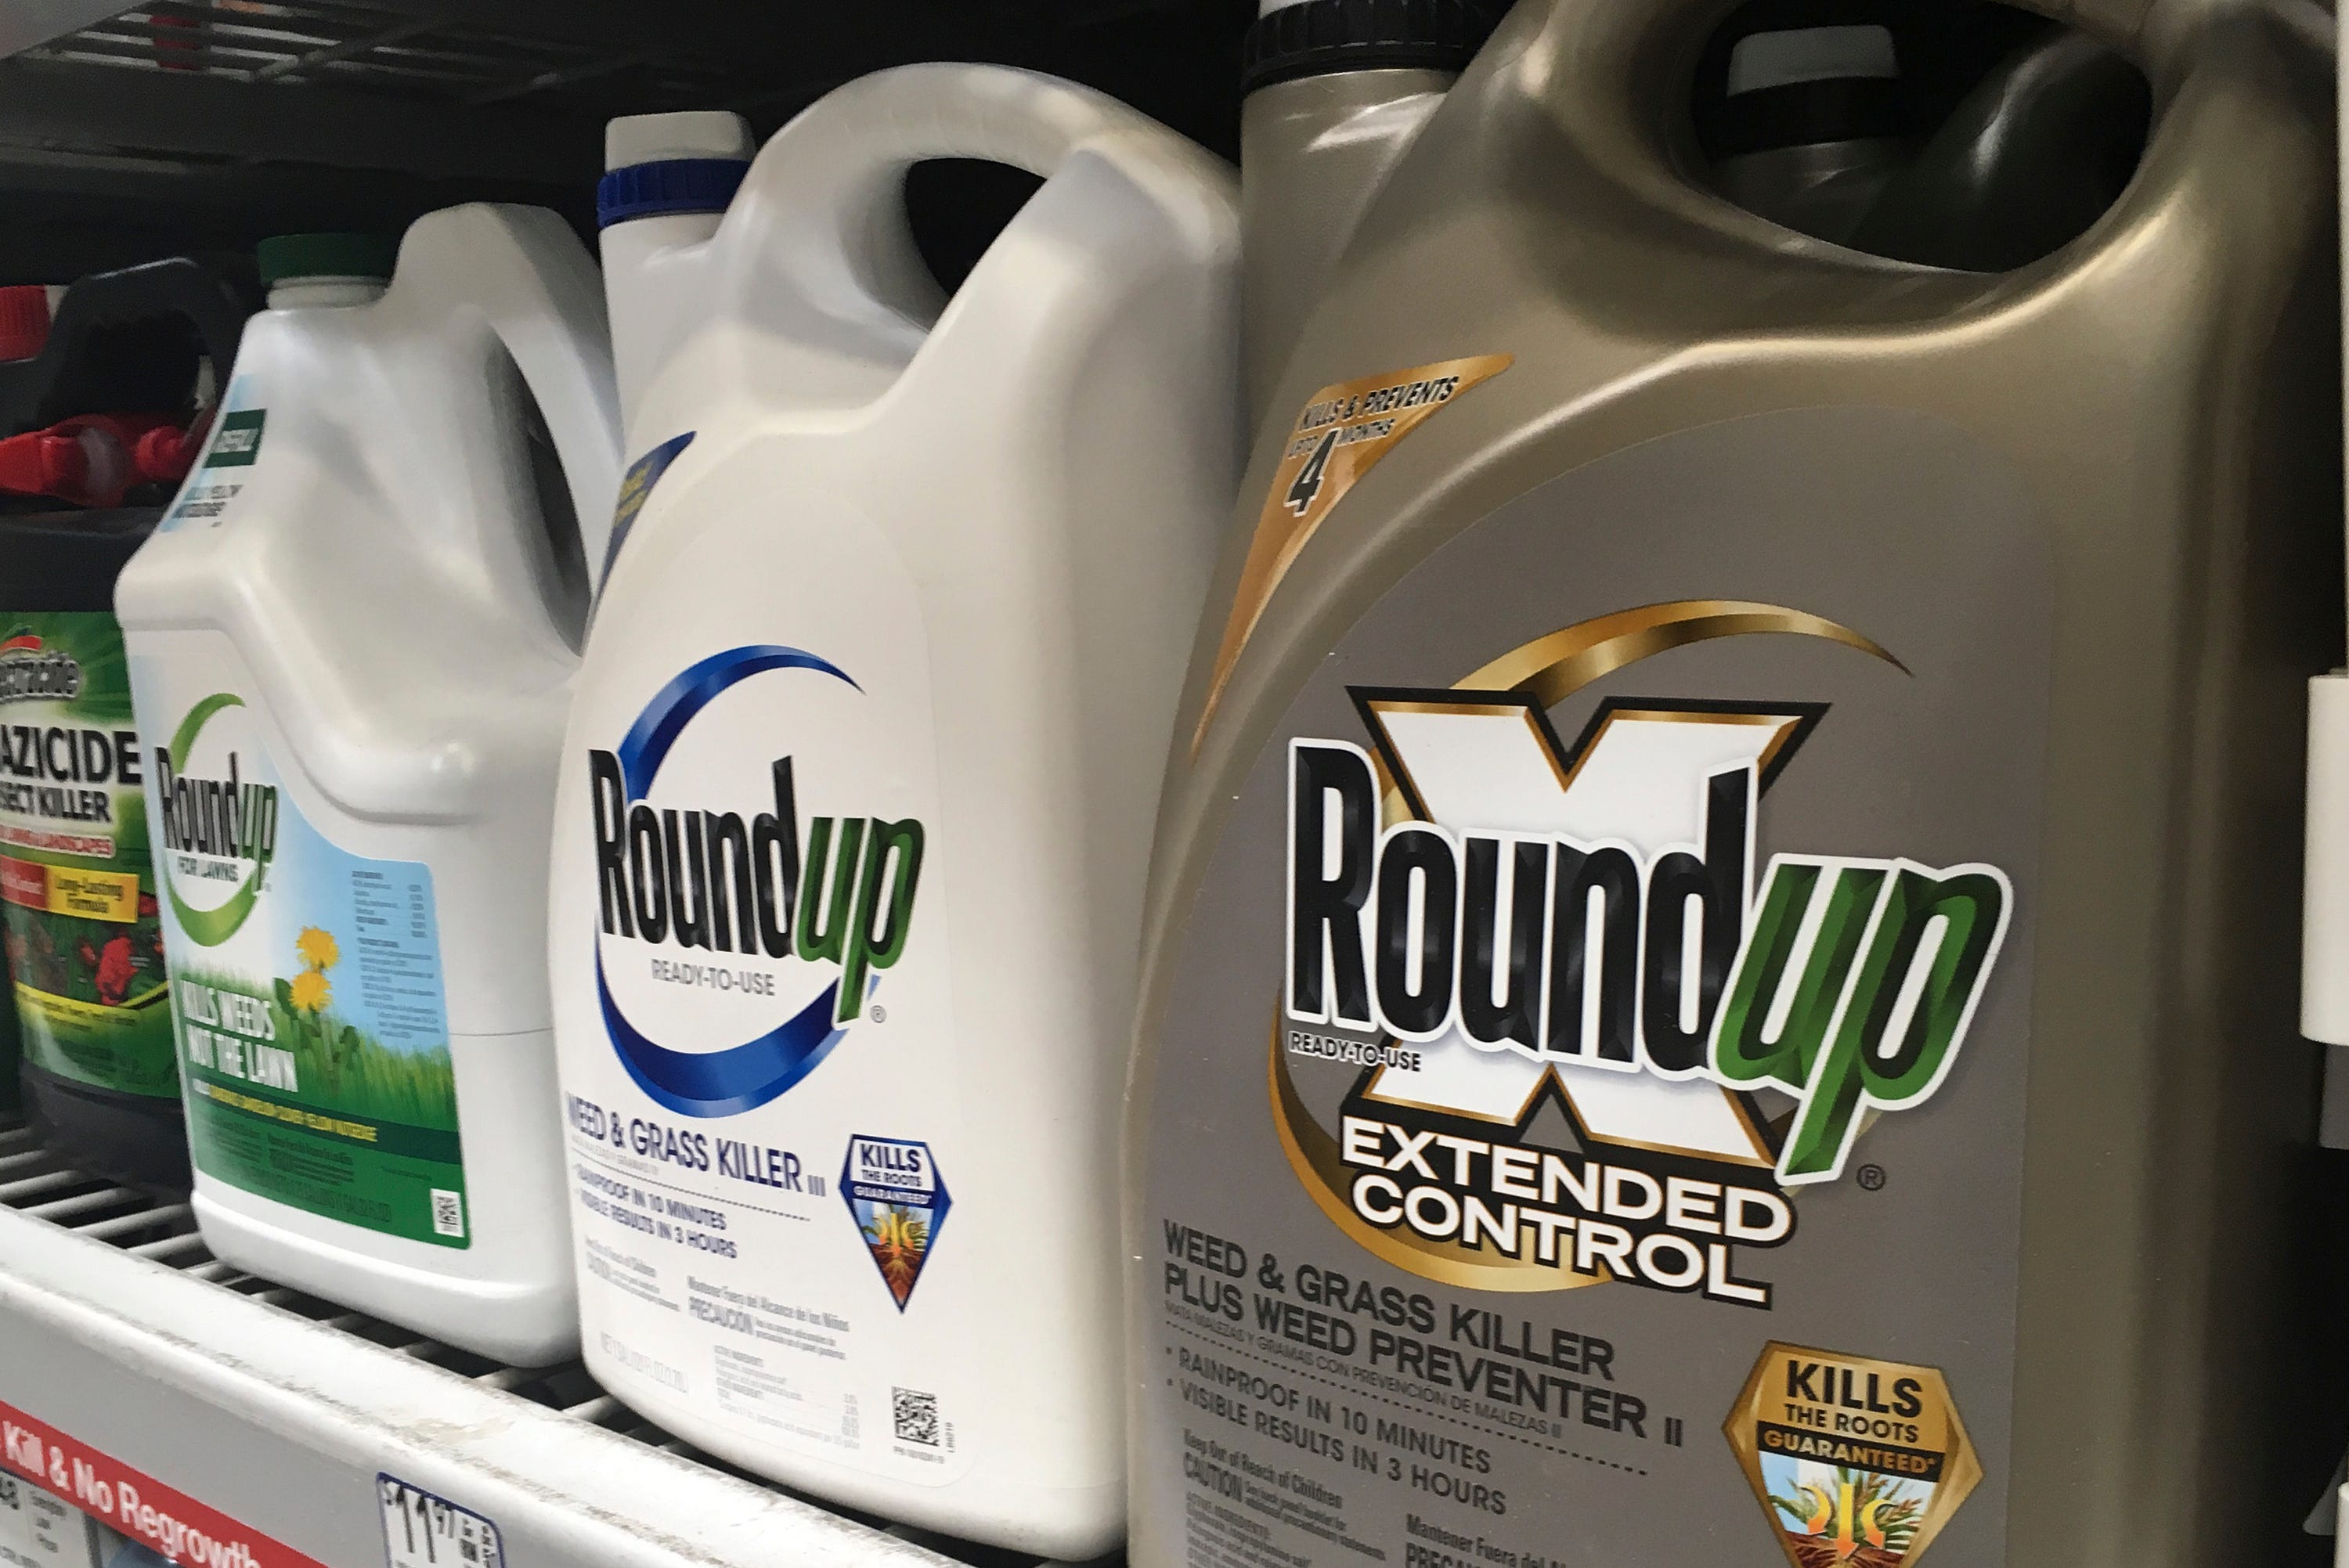 Jury orders Monsanto to pay $2 billion in Roundup weed killer cancer case; appeal expected